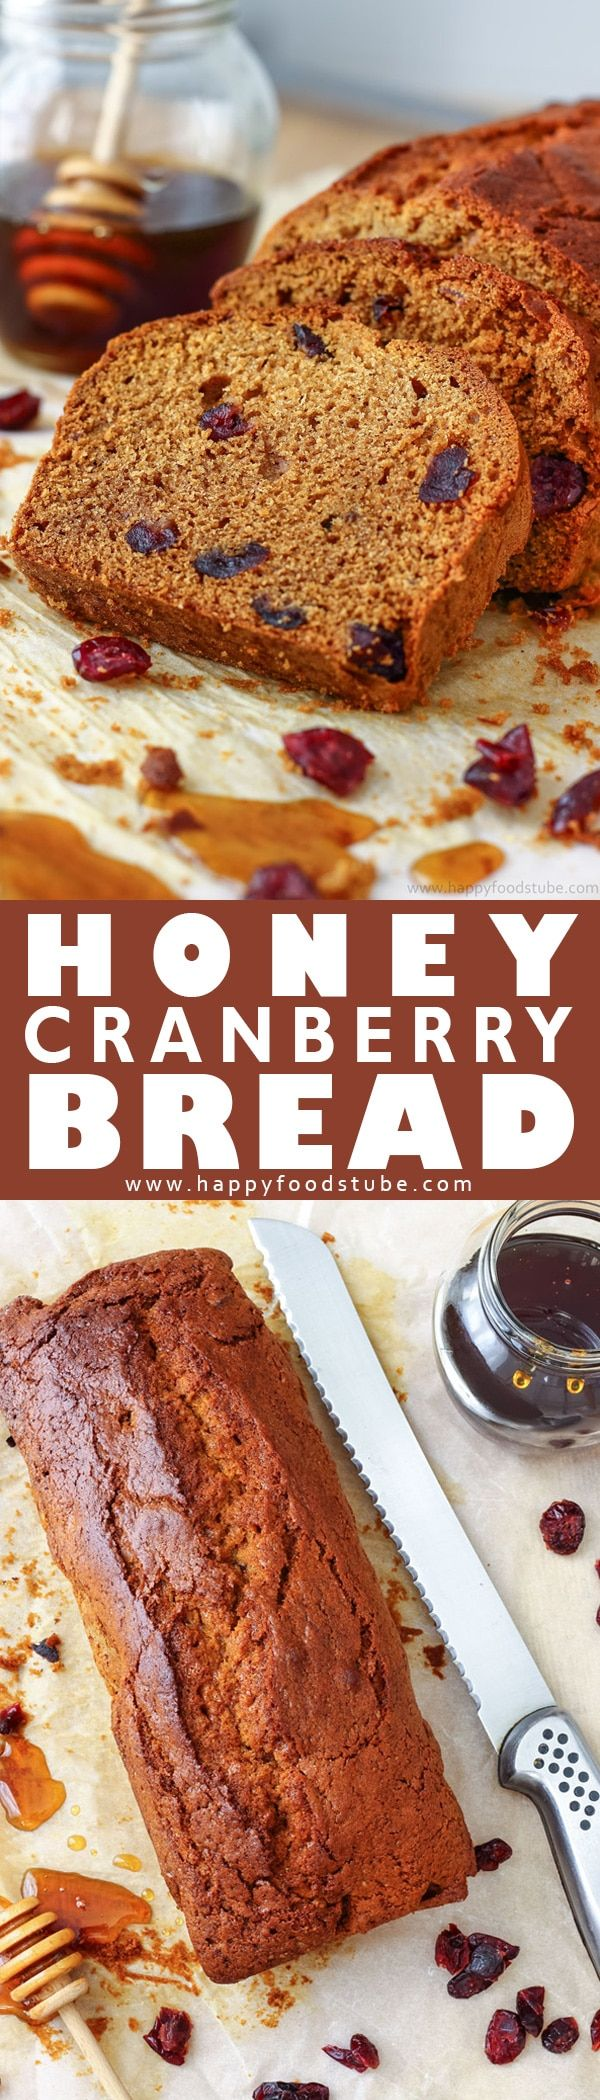 This honey cranberry bread is a delicious quick bread. Made from scratch, with a 10 minute preparation it is the perfect loaf for busy families. Homemade honey bread with cranberries. #quickbread #bread #loaf #baking via @happyfoodstube